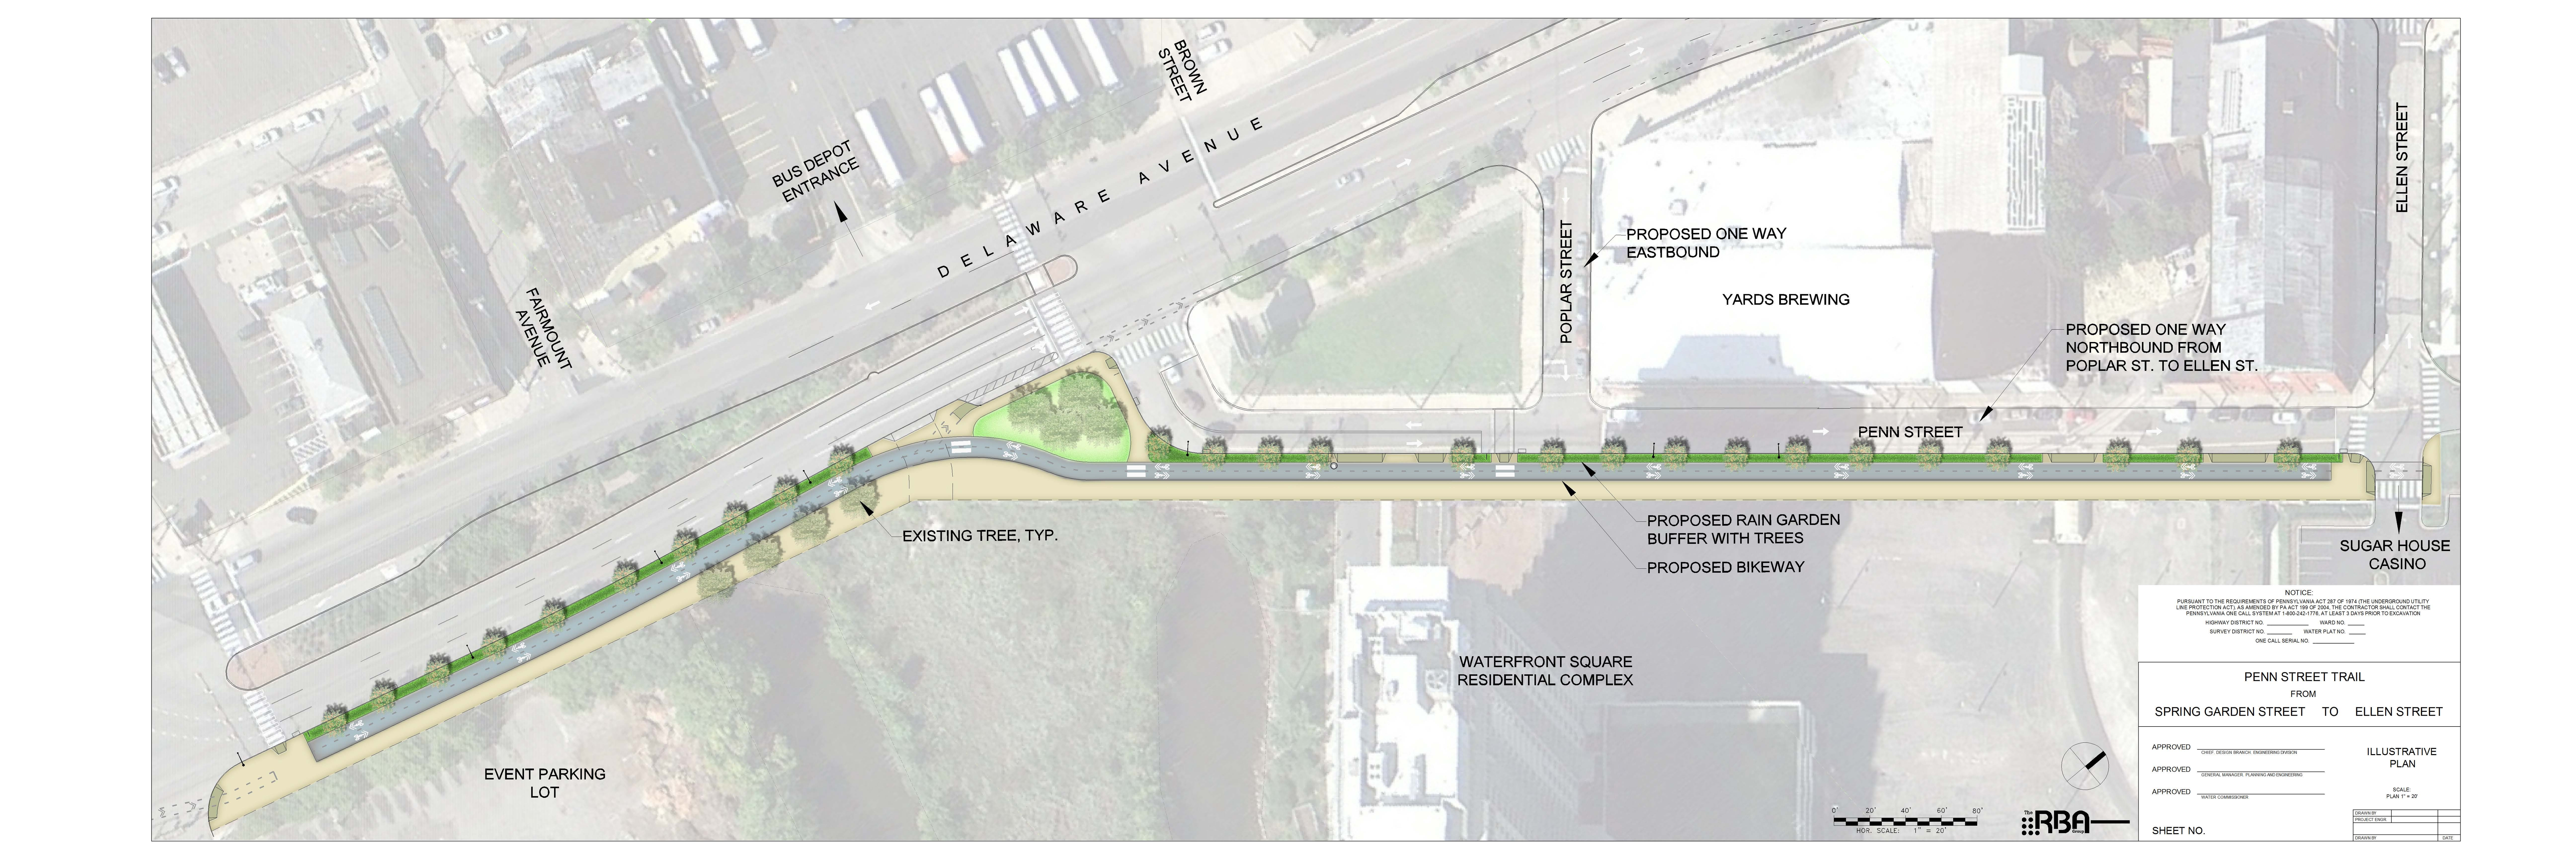 Preliminary Design for Penn Street Trail